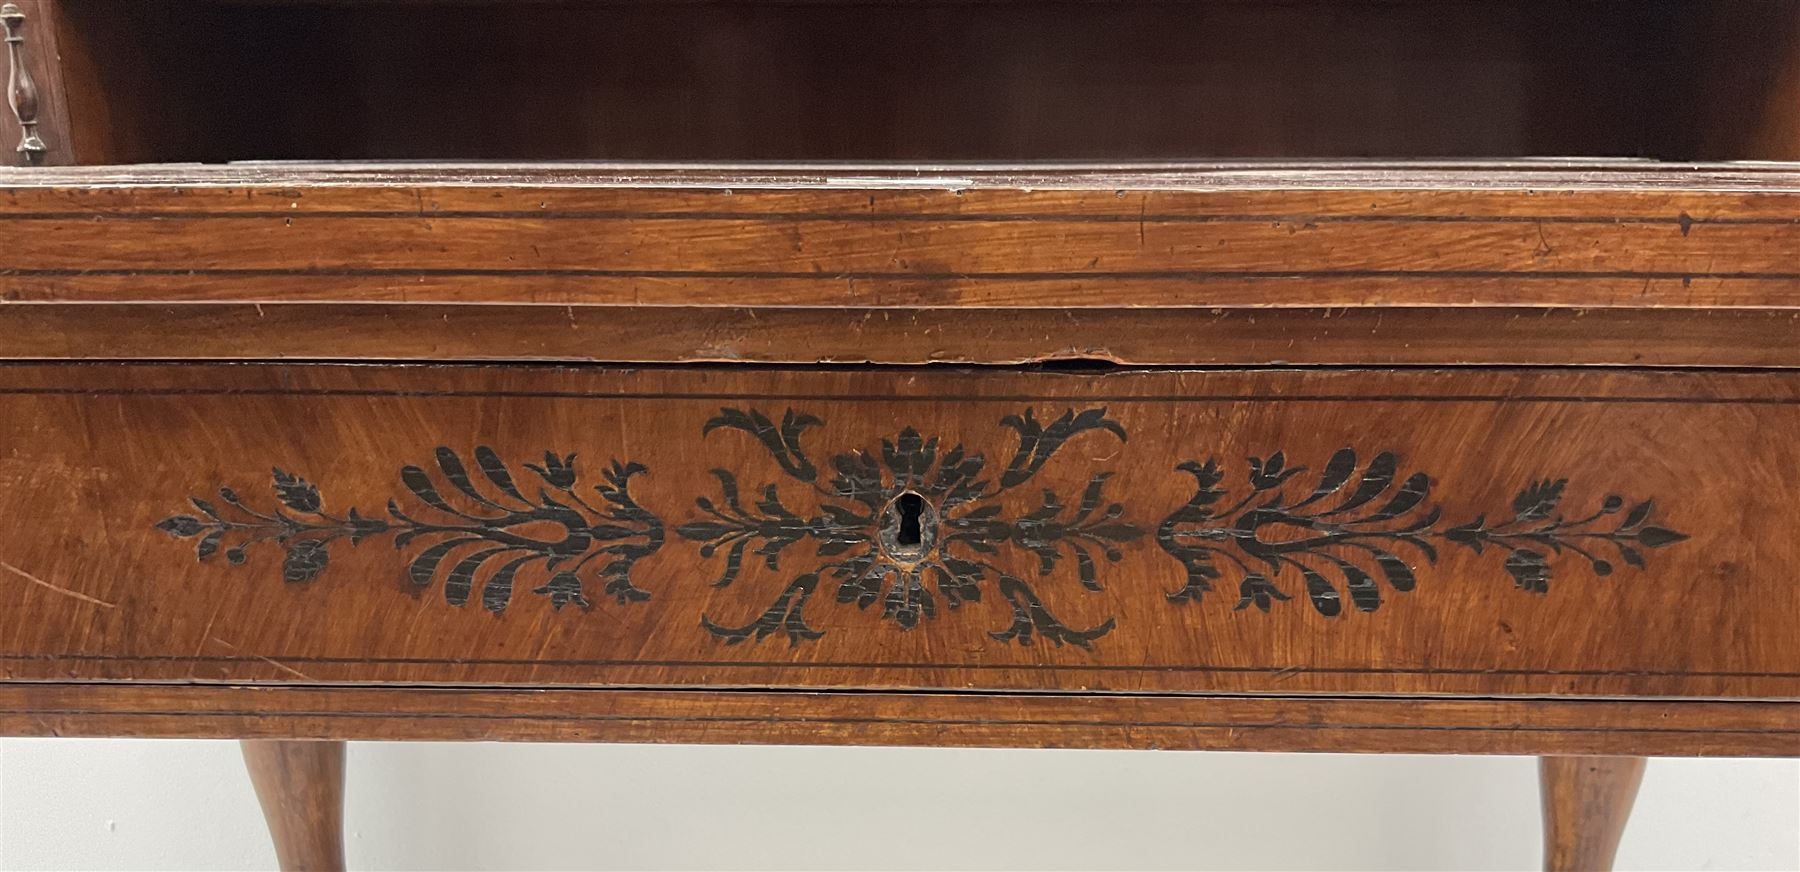 19th century inlaid grained oak writing desk - Image 4 of 4